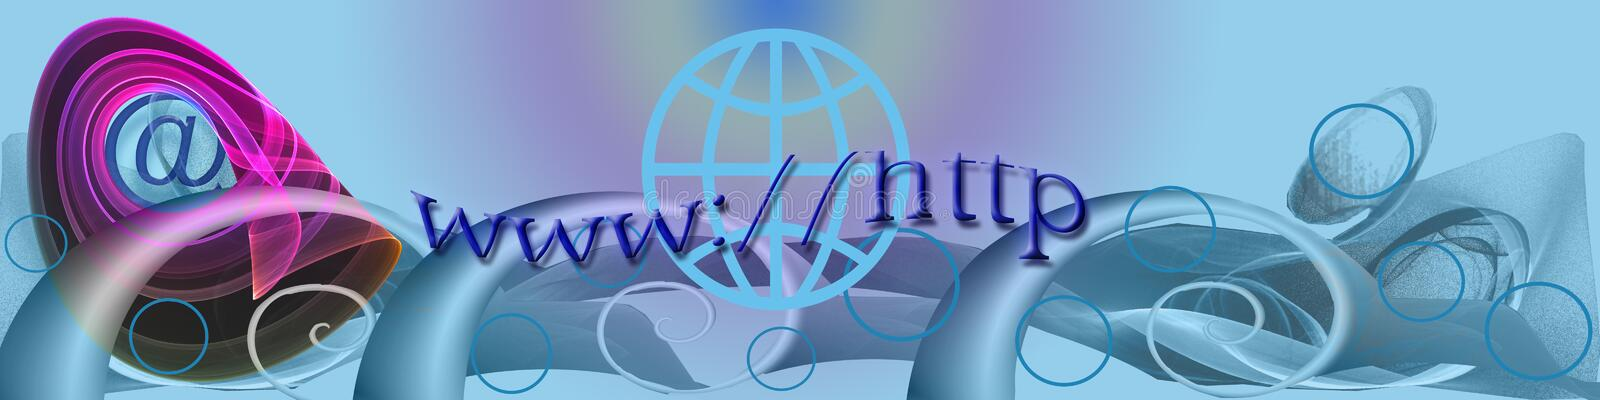 Banner: Waves And Internet. This design / banner / header has playful wave shapes. The @ globe and text represent the use of world wide internet stock illustration